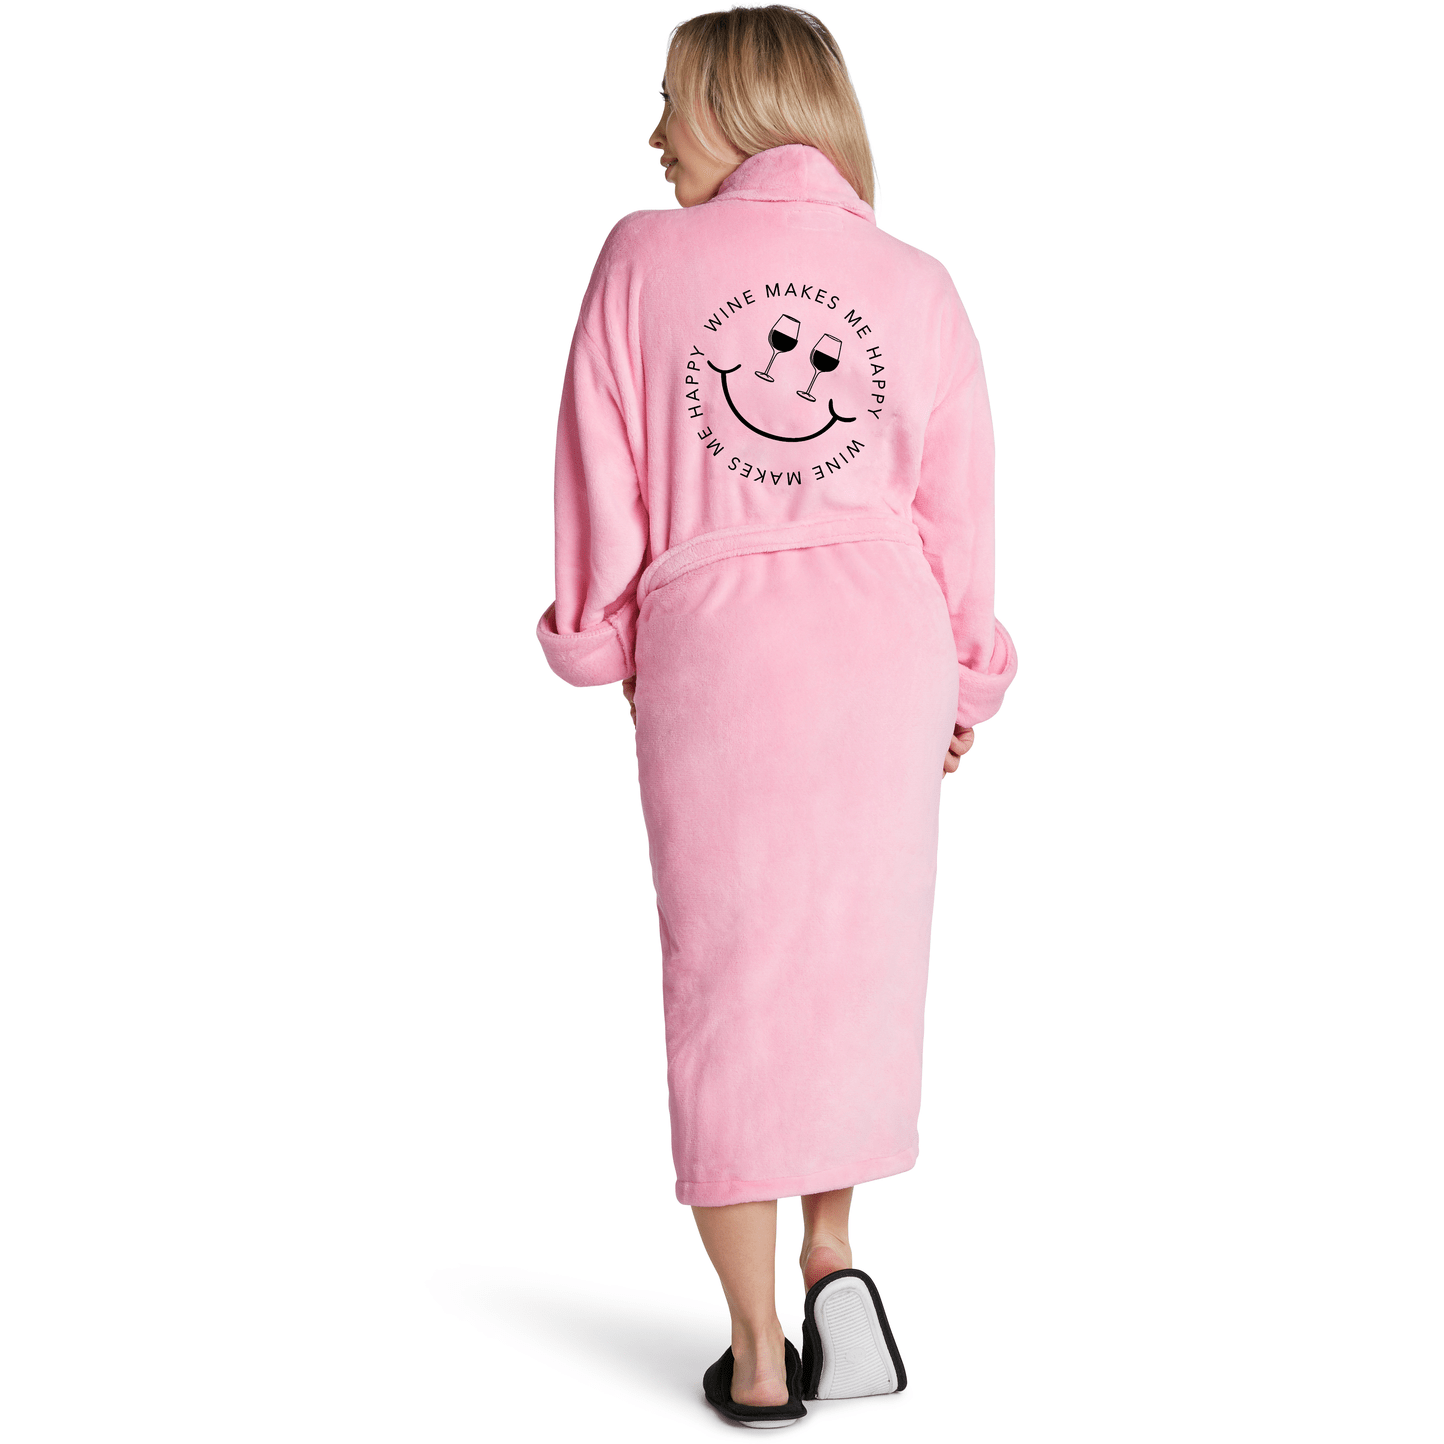 LA Trading PINK / N/S LA Trading Co Wine Makes Me Happy Robe